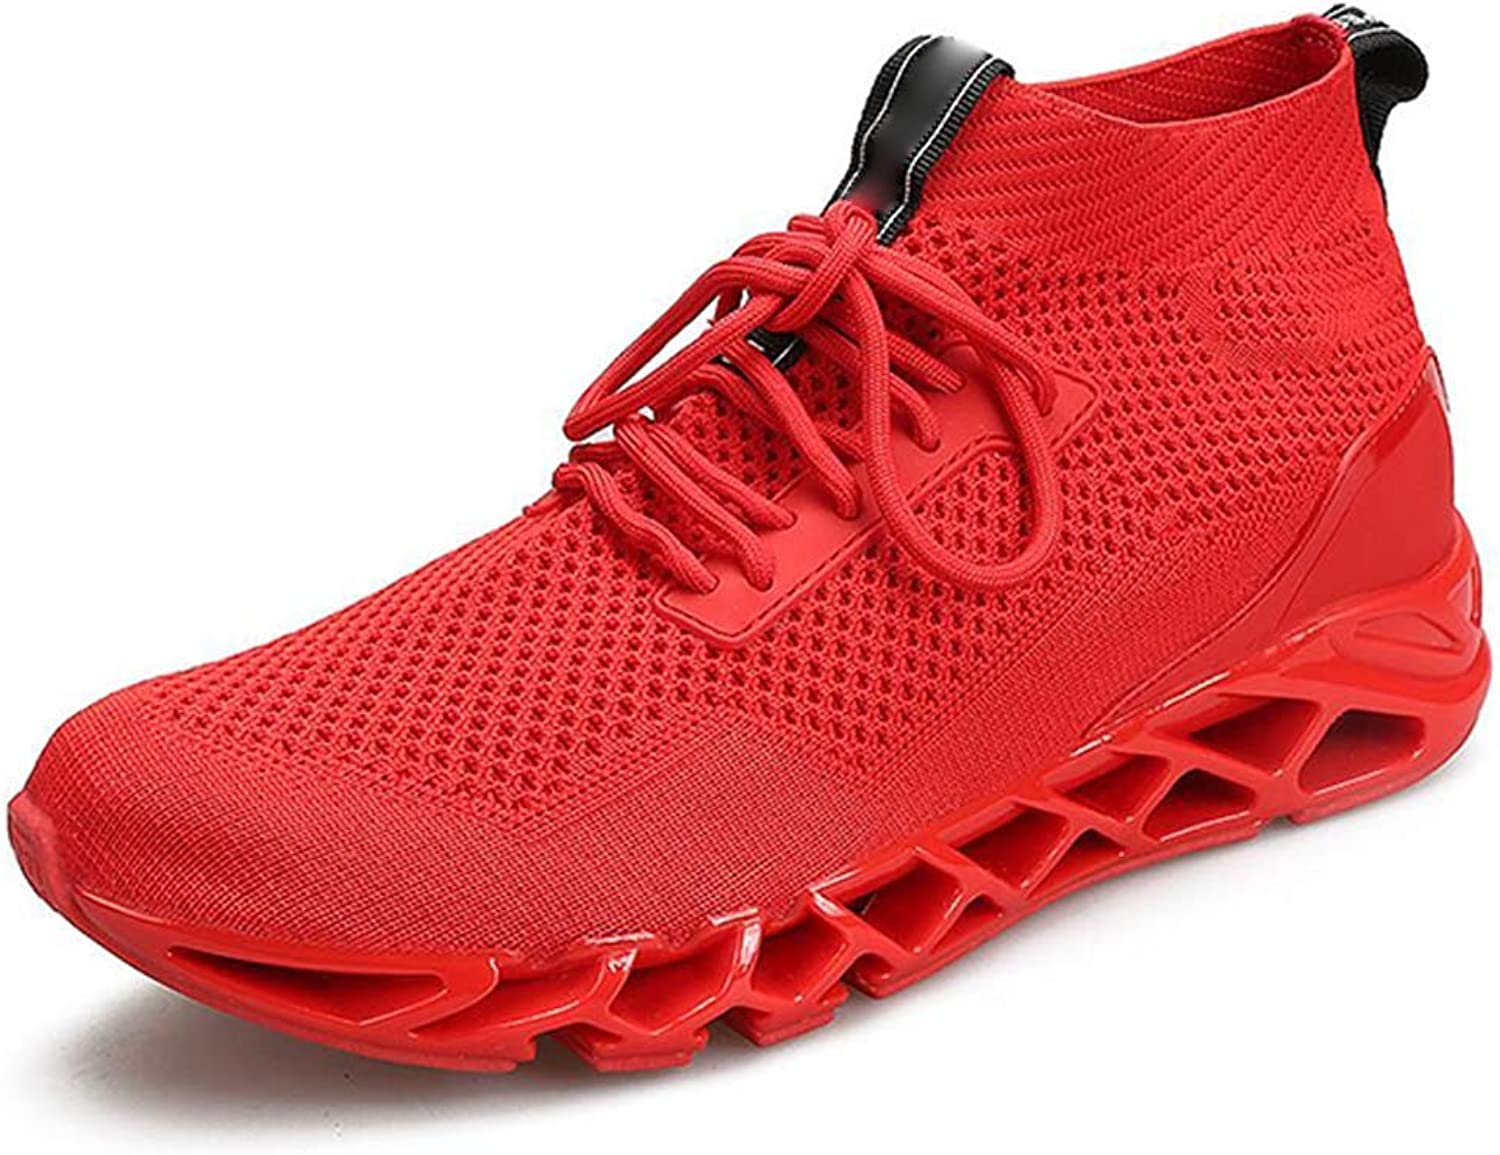 Outdoor Sneakers for Mens Men's Running shoes Outdoor Sports and Leisure High Top and Lightweight Wear Resistant Soles (color   Red, Size   40)